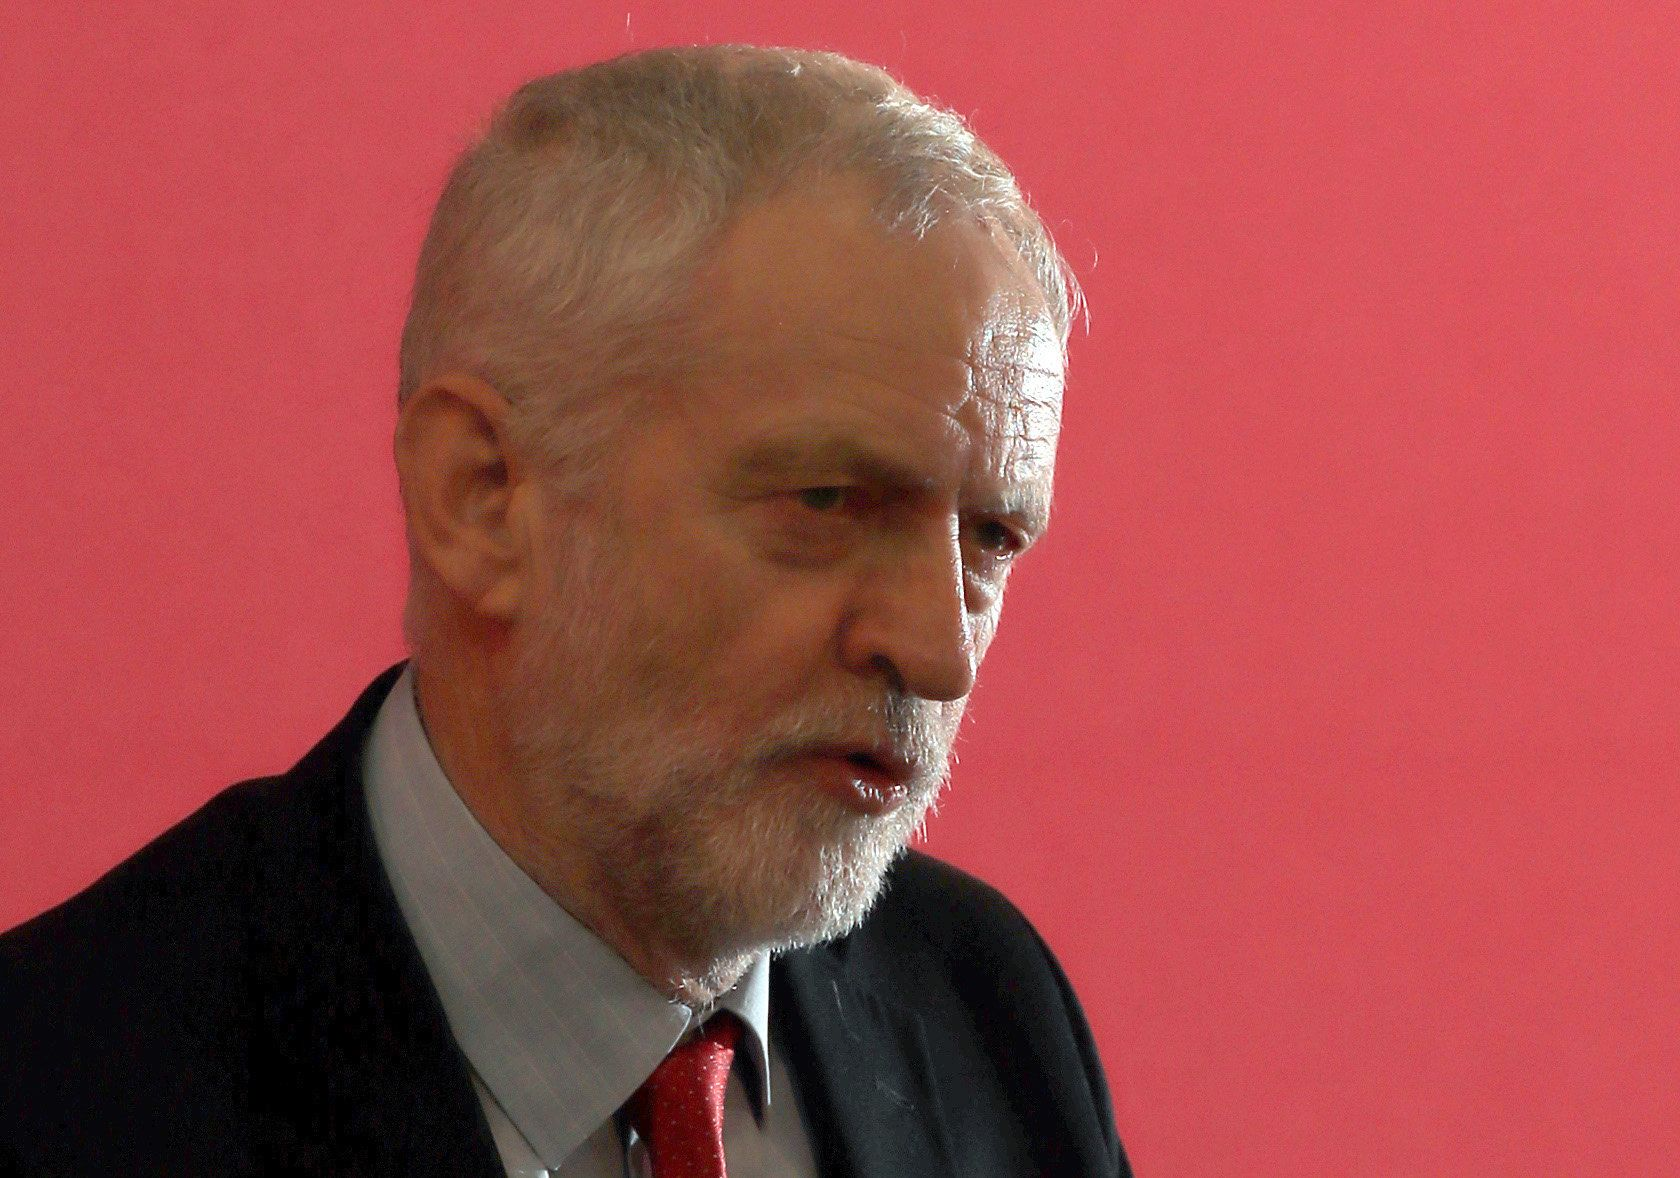 Labour leader Corbyn slammed for spending Passover with anti-Israel group